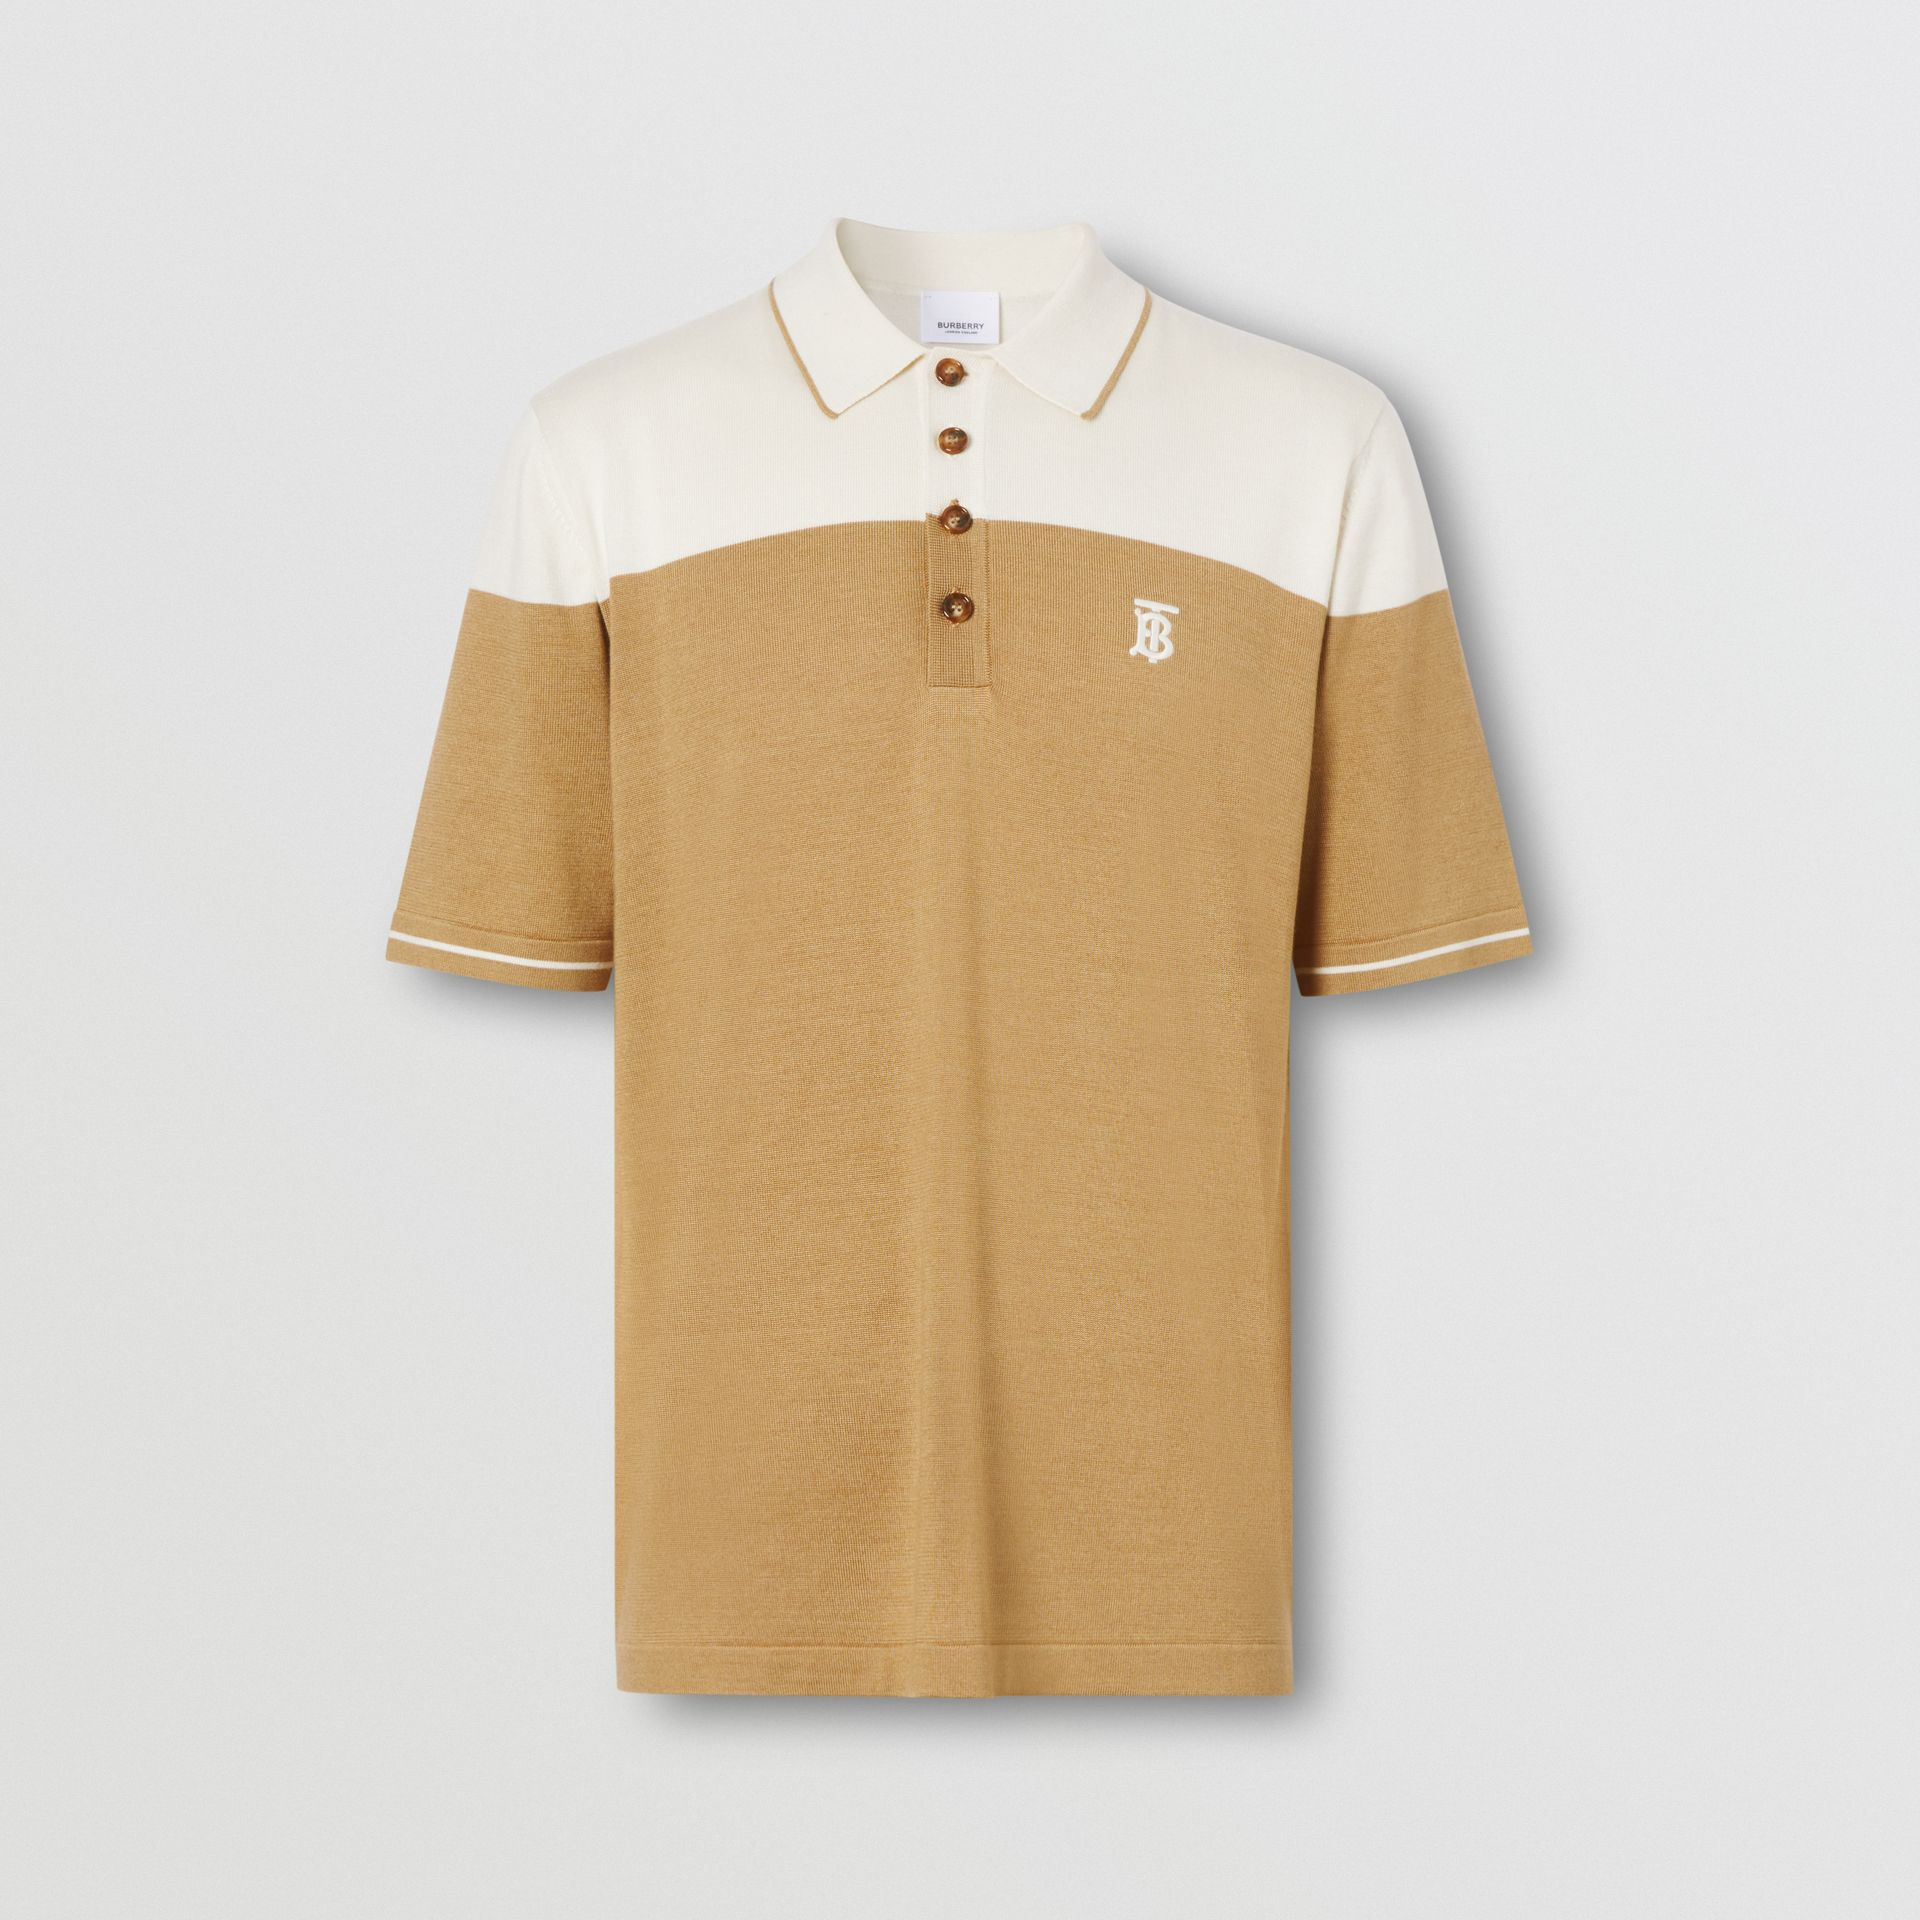 Monogram Motif Two-tone Silk Cashmere Polo Shirt in Archive Beige - Men | Burberry - gallery image 3